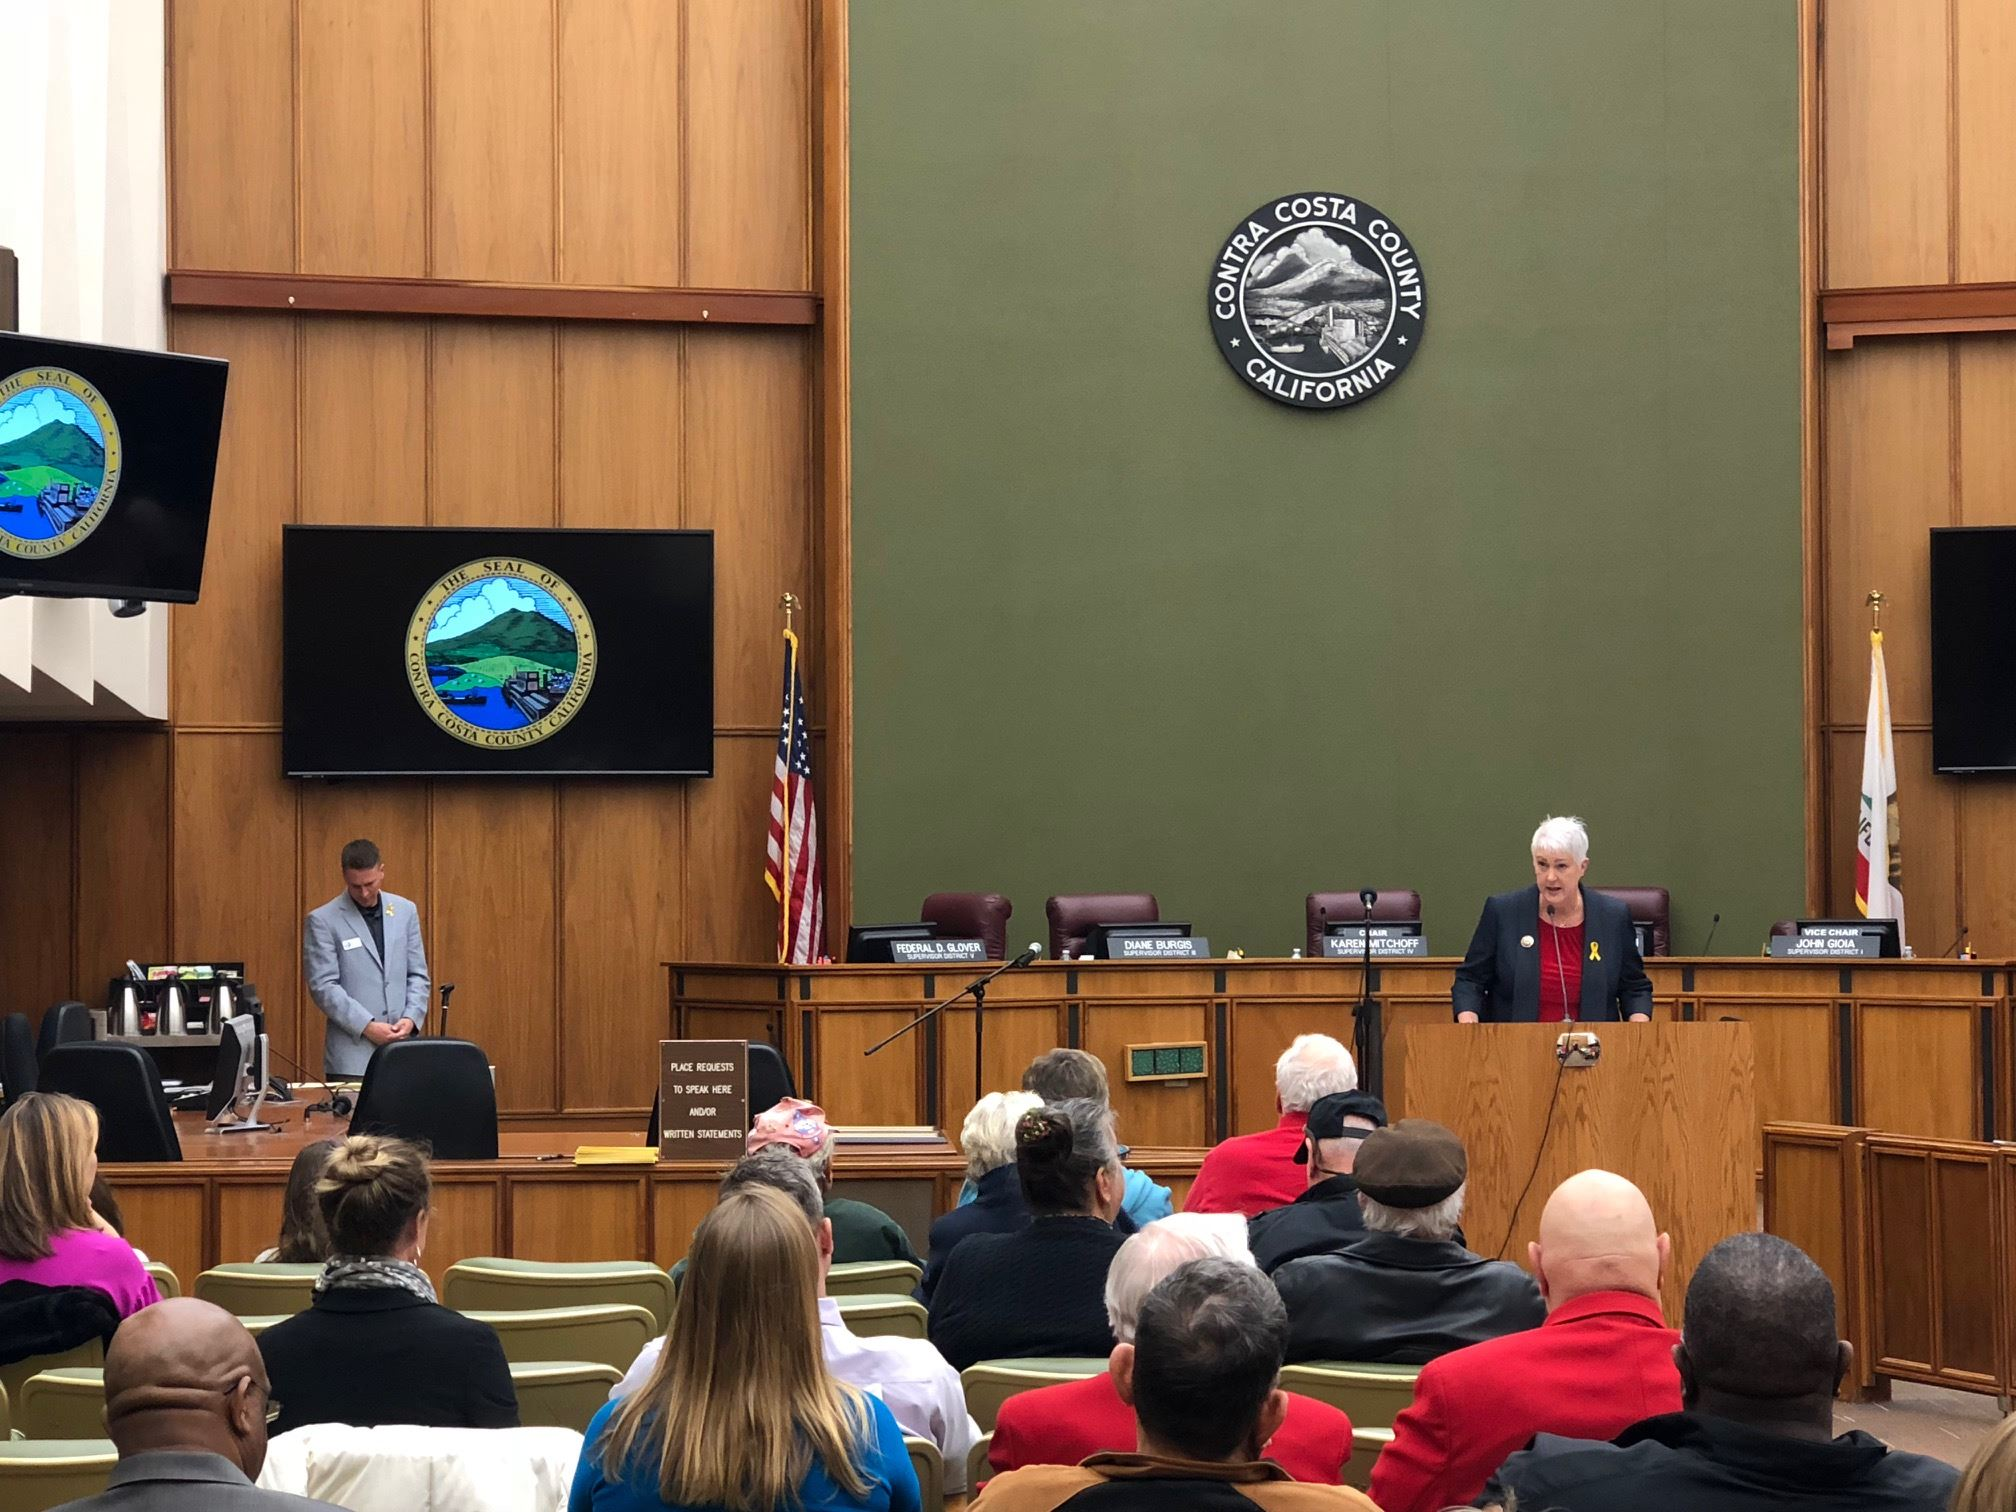 100th Veterans Day Celebration Bd Chambers wide shot 11-13-18